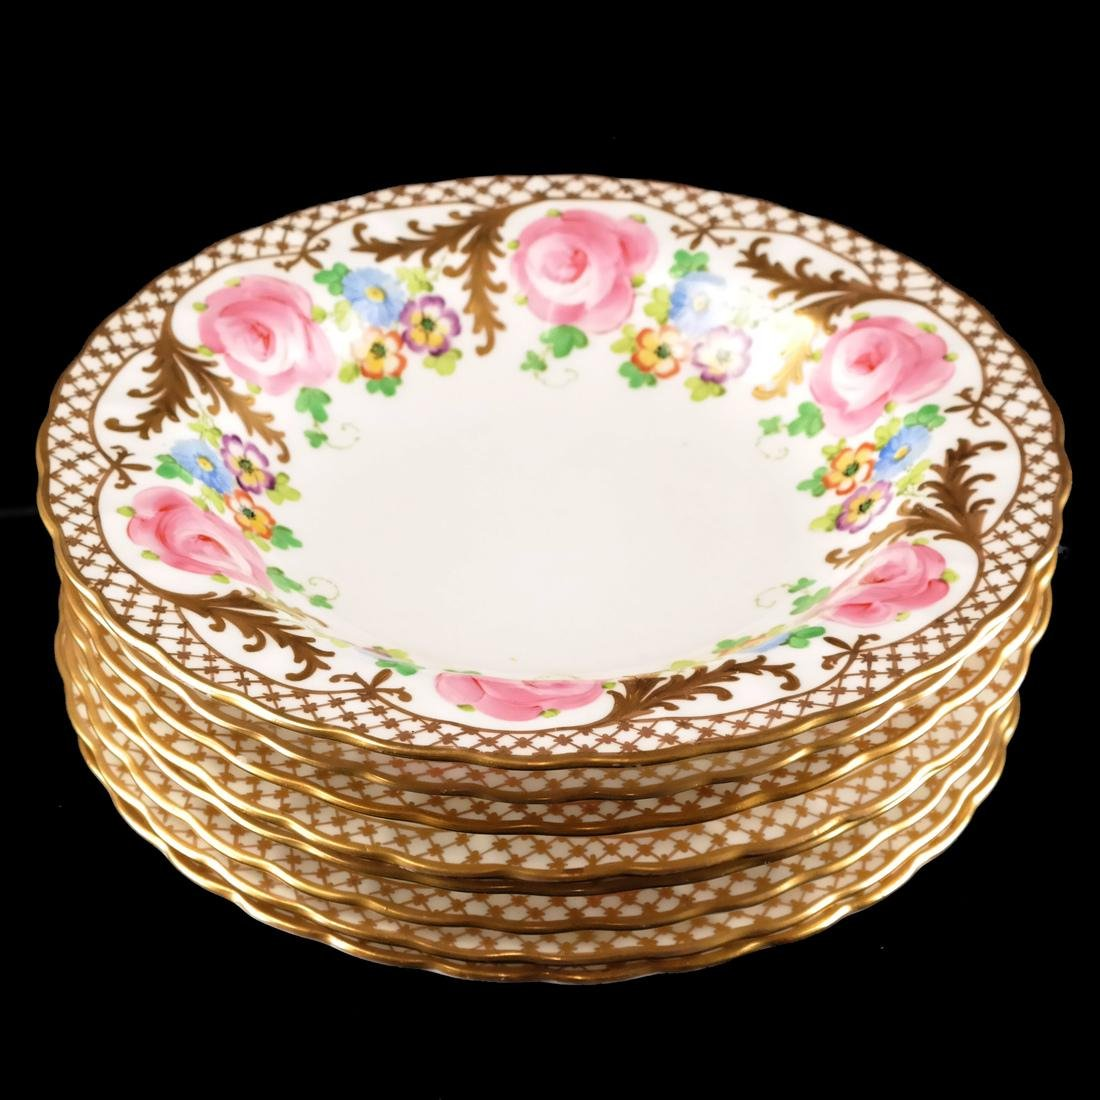 8 Crown, England Floral Decorated Bowls